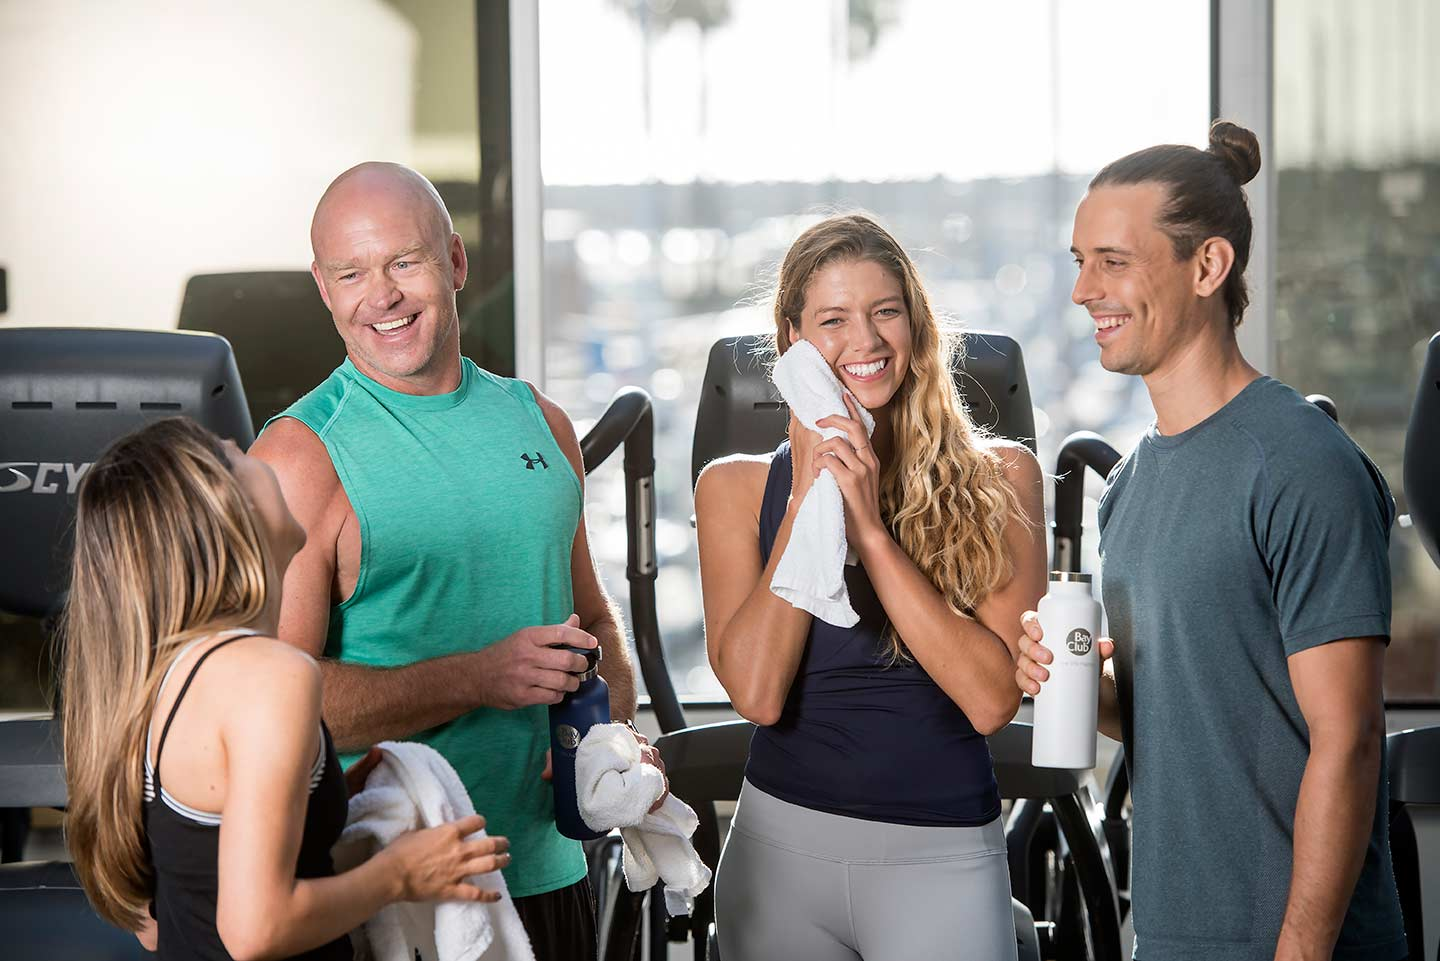 Lifestyle clubs in san antonio